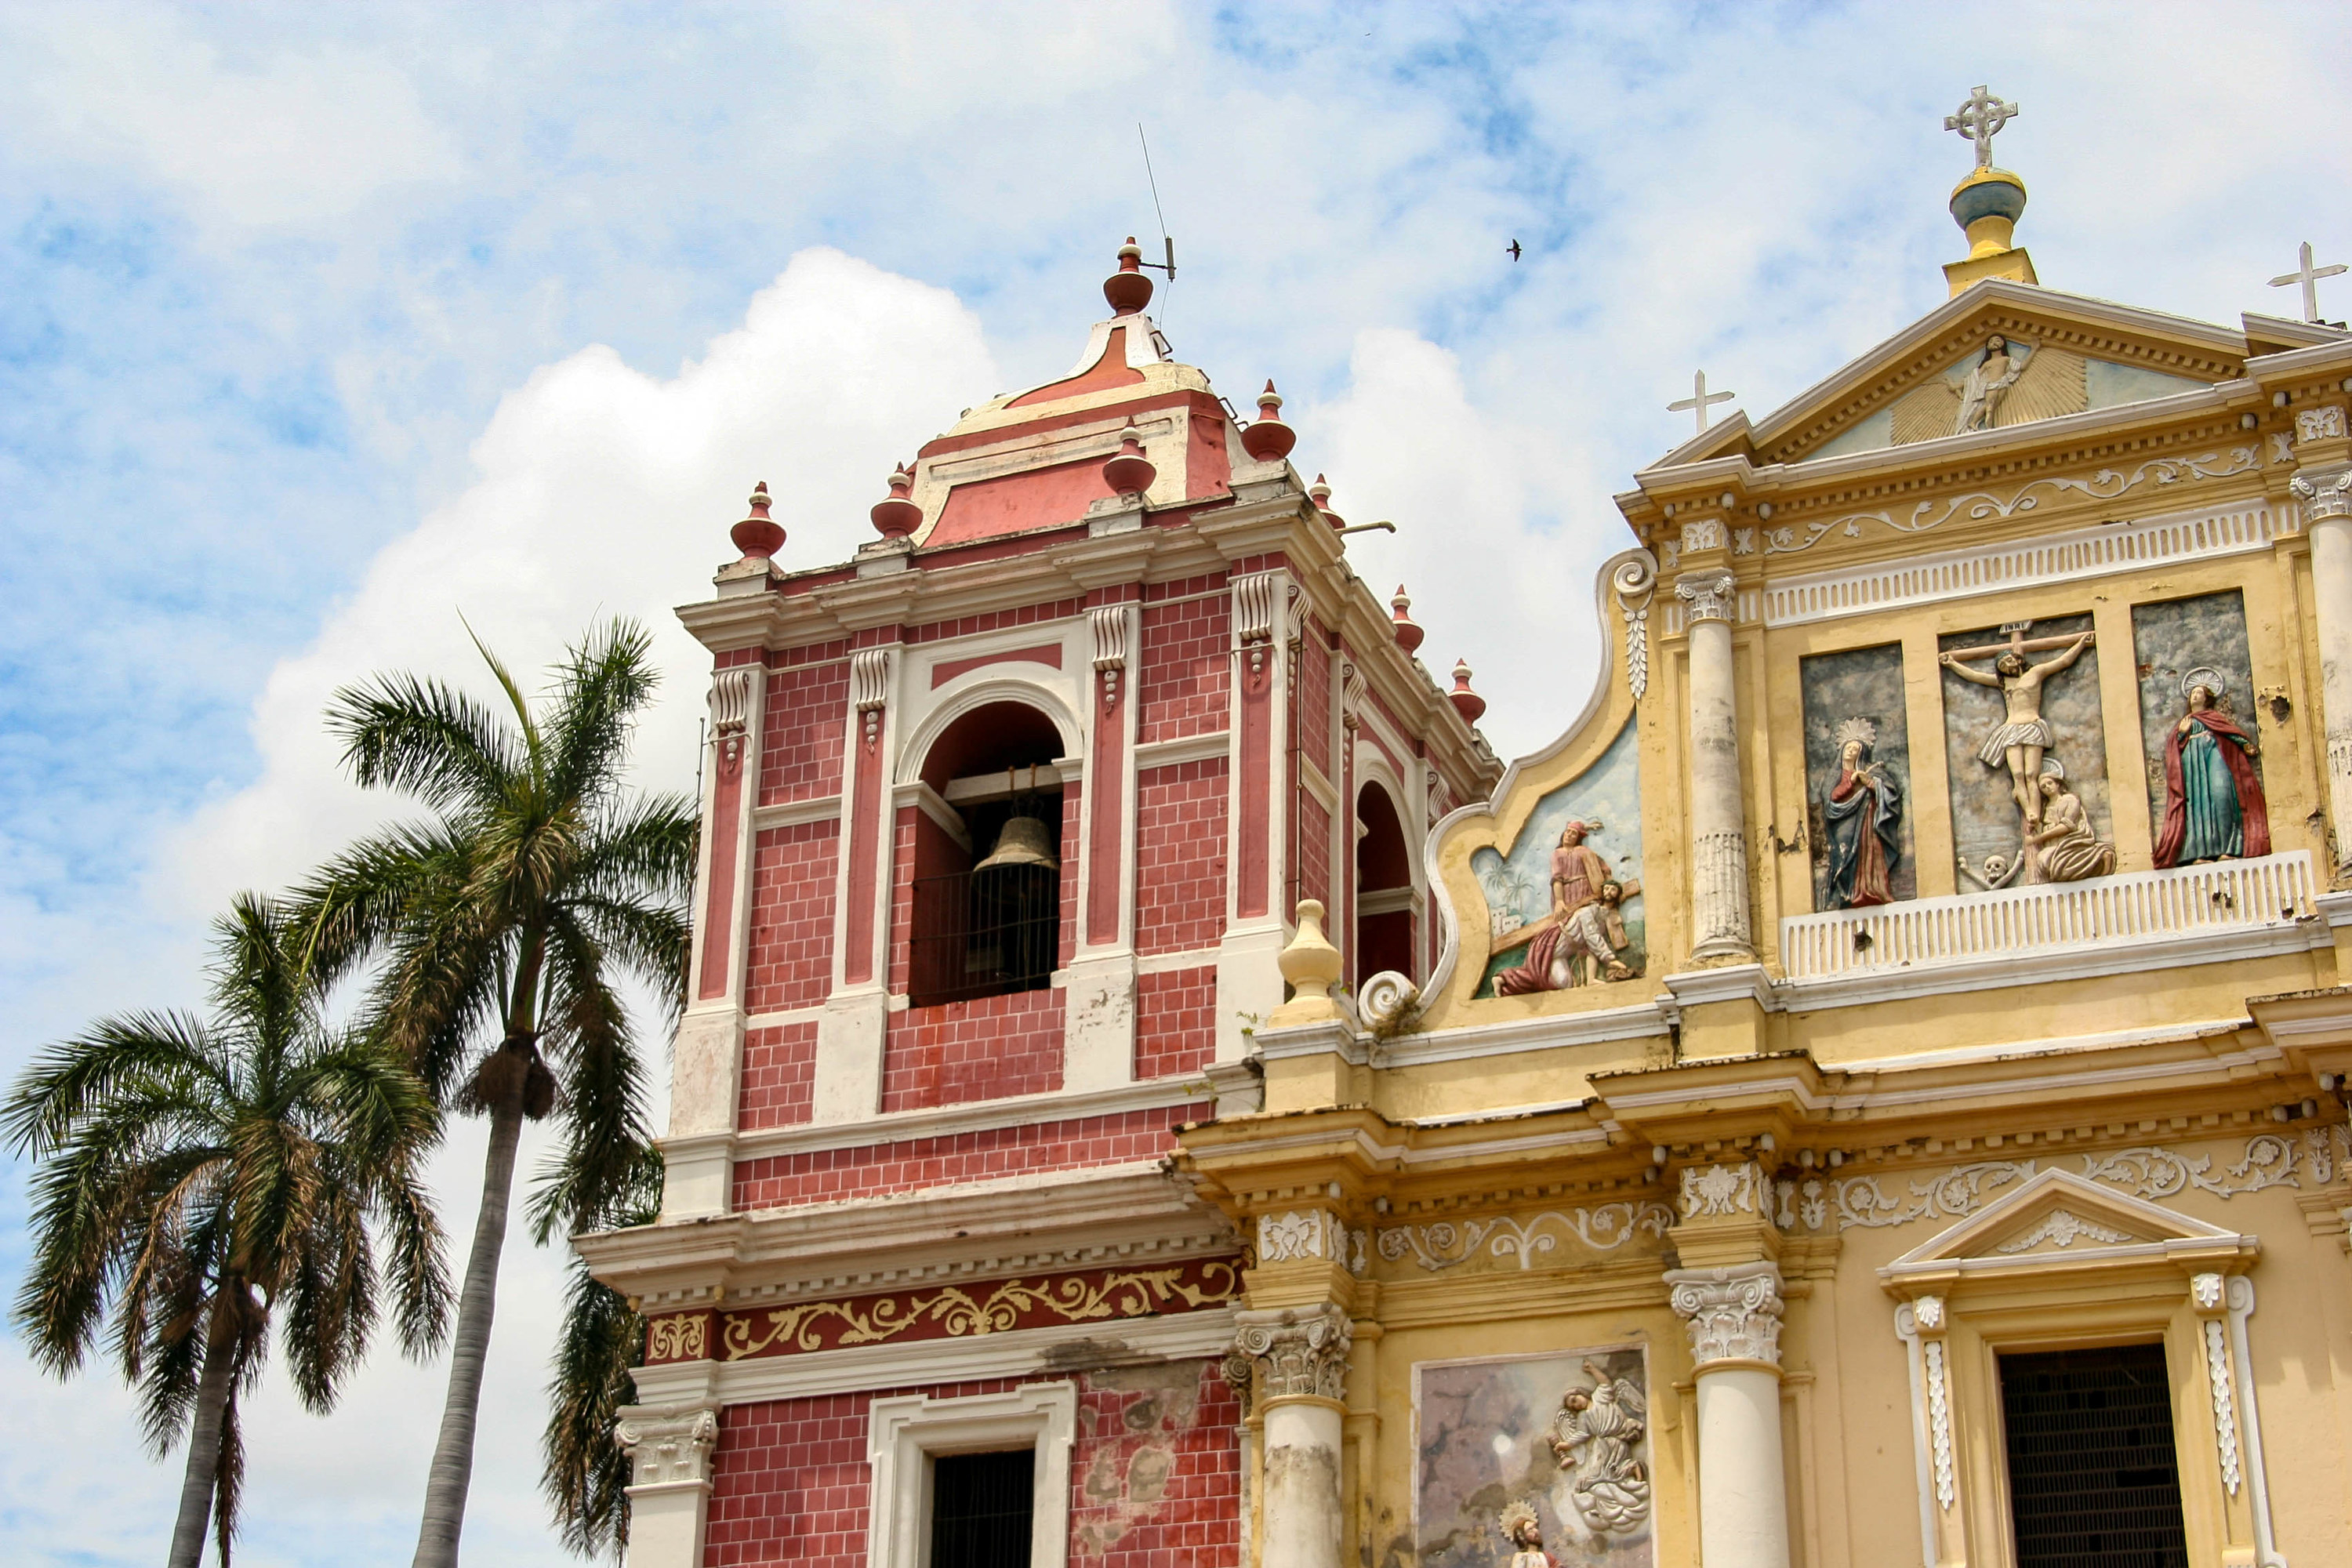 Colorful church buildings with religious art on the facade, next to two palm trees